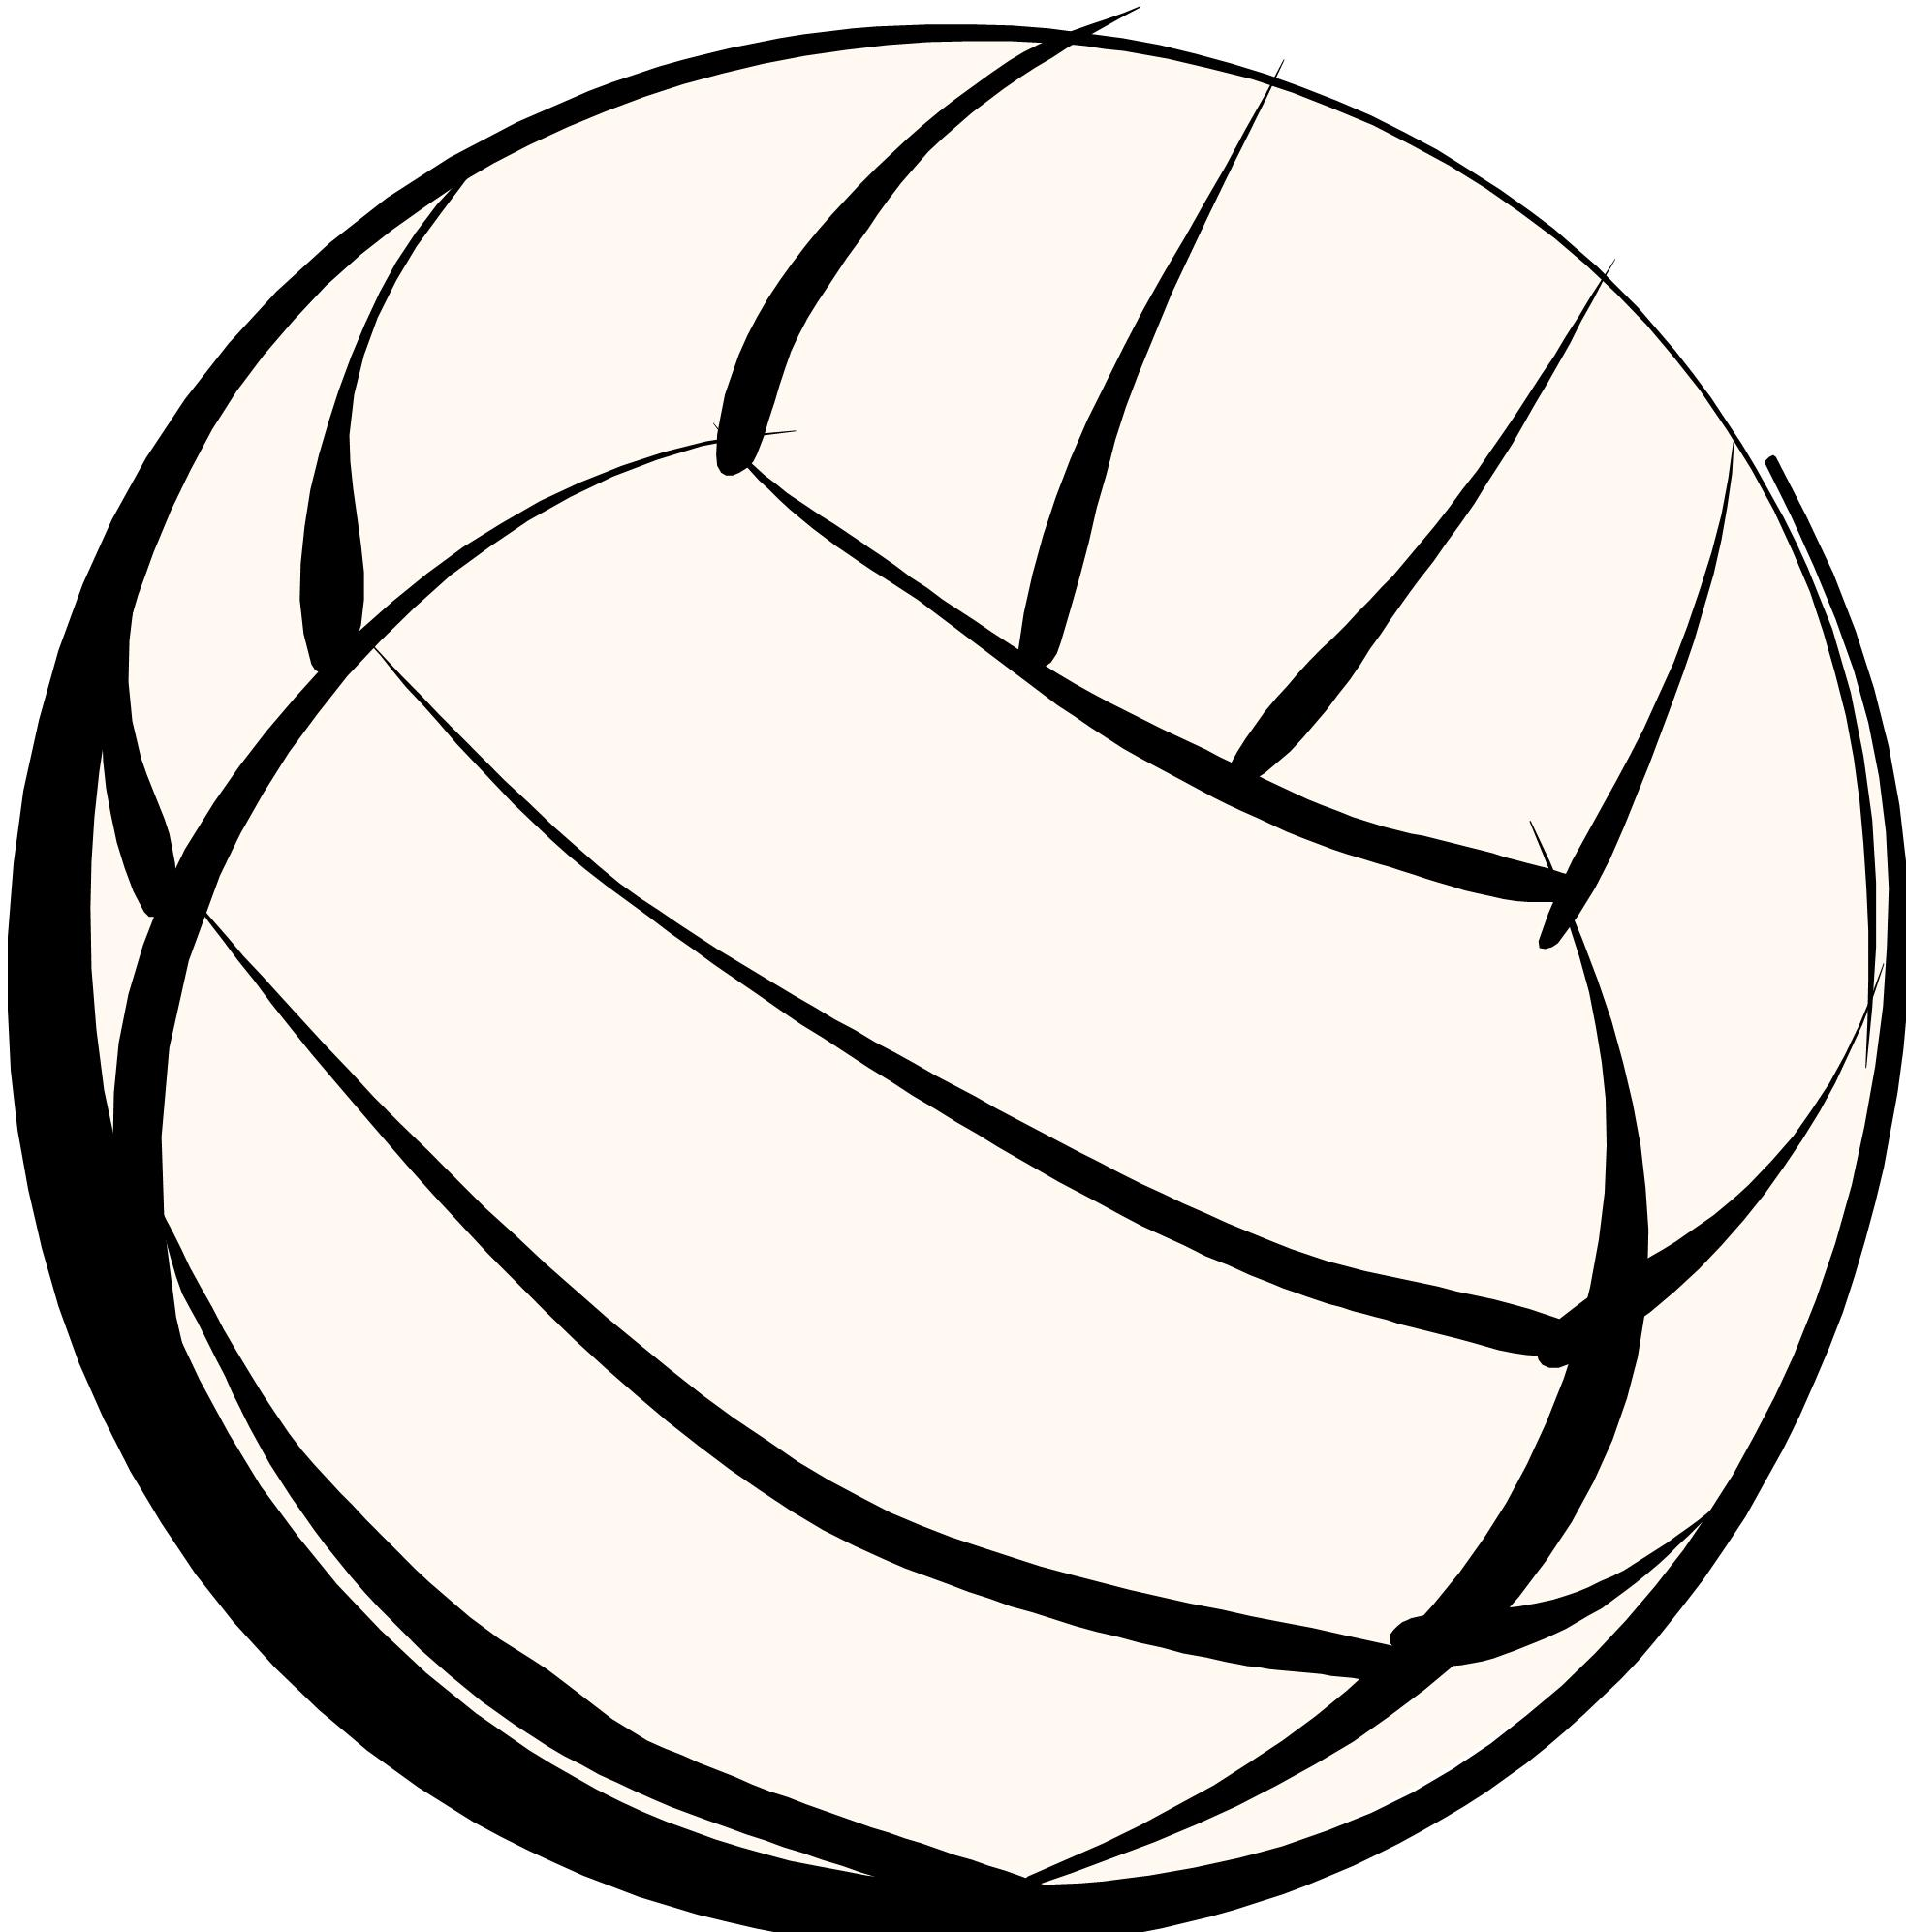 Volleyball vector clipart clip art transparent download Free Animated Volleyball Pictures, Download Free Clip Art ... clip art transparent download